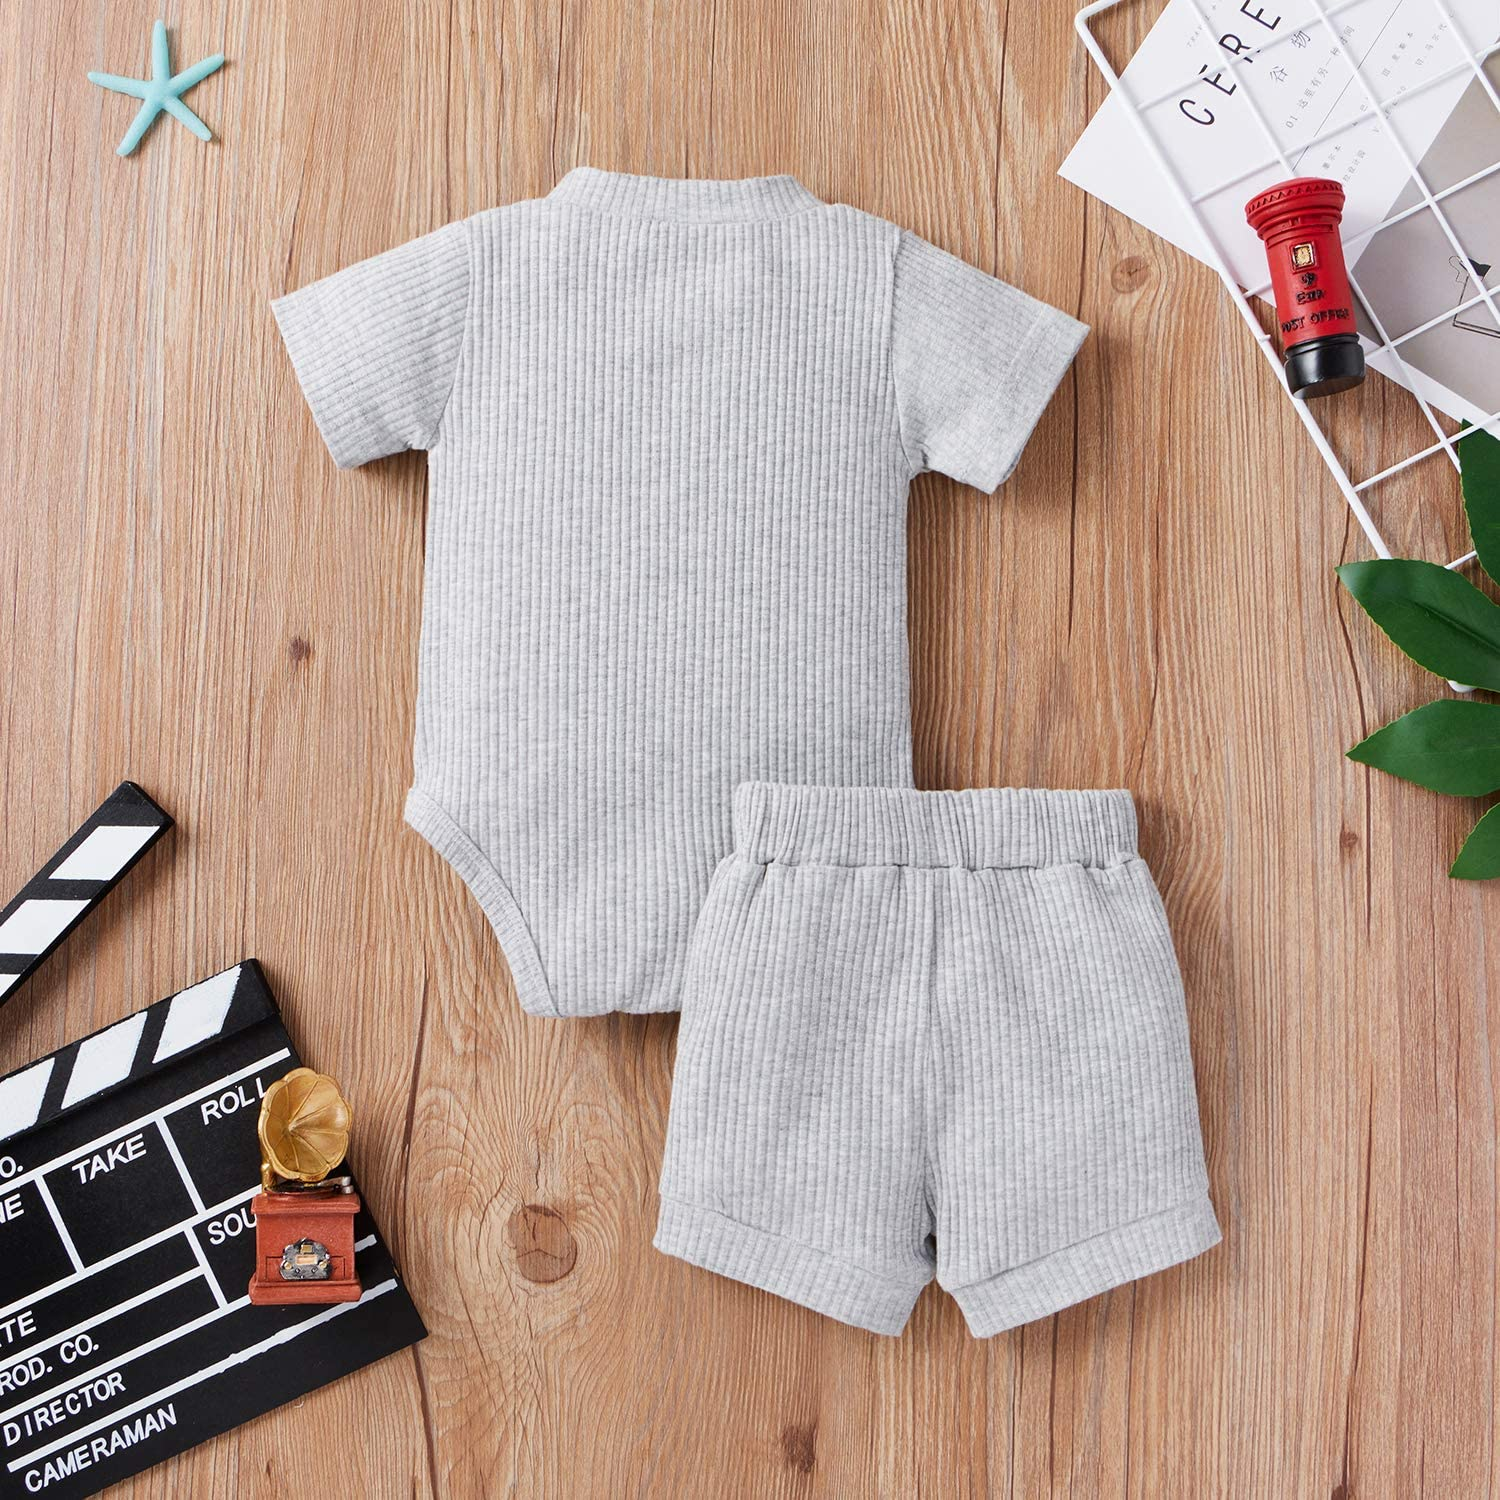 Meiweileya Newborn Baby Boy Girls Clothes Solid Ribbed Short Sleeve Romper Shorts Set Summer Outfits